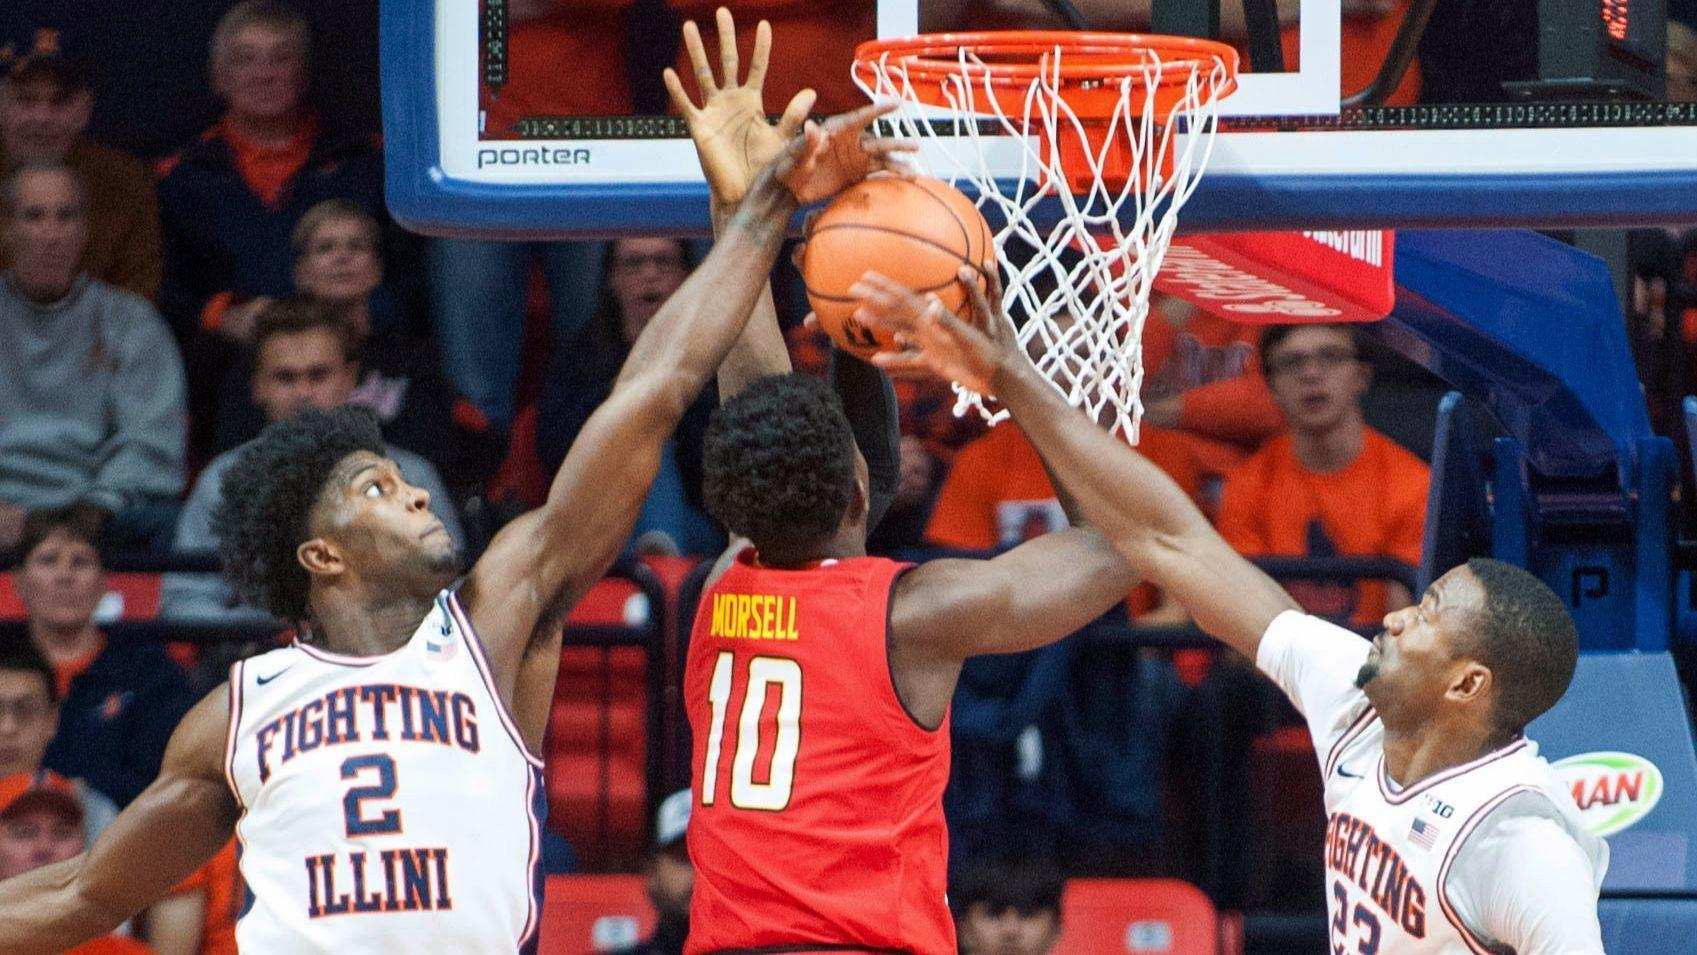 Maryland blows 22-point lead but beats Illinois, 92-91, on foul shot in final second of OT